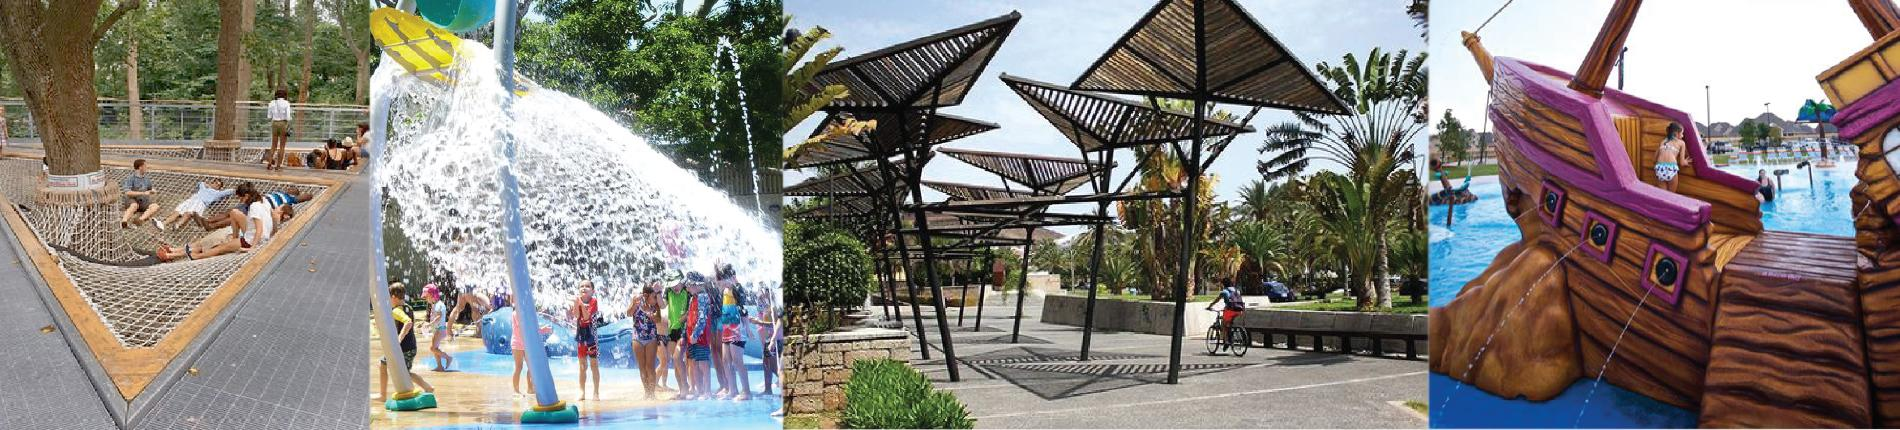 Proposed concept images forming part of the draft Anzac Park Precinct Master Plan.